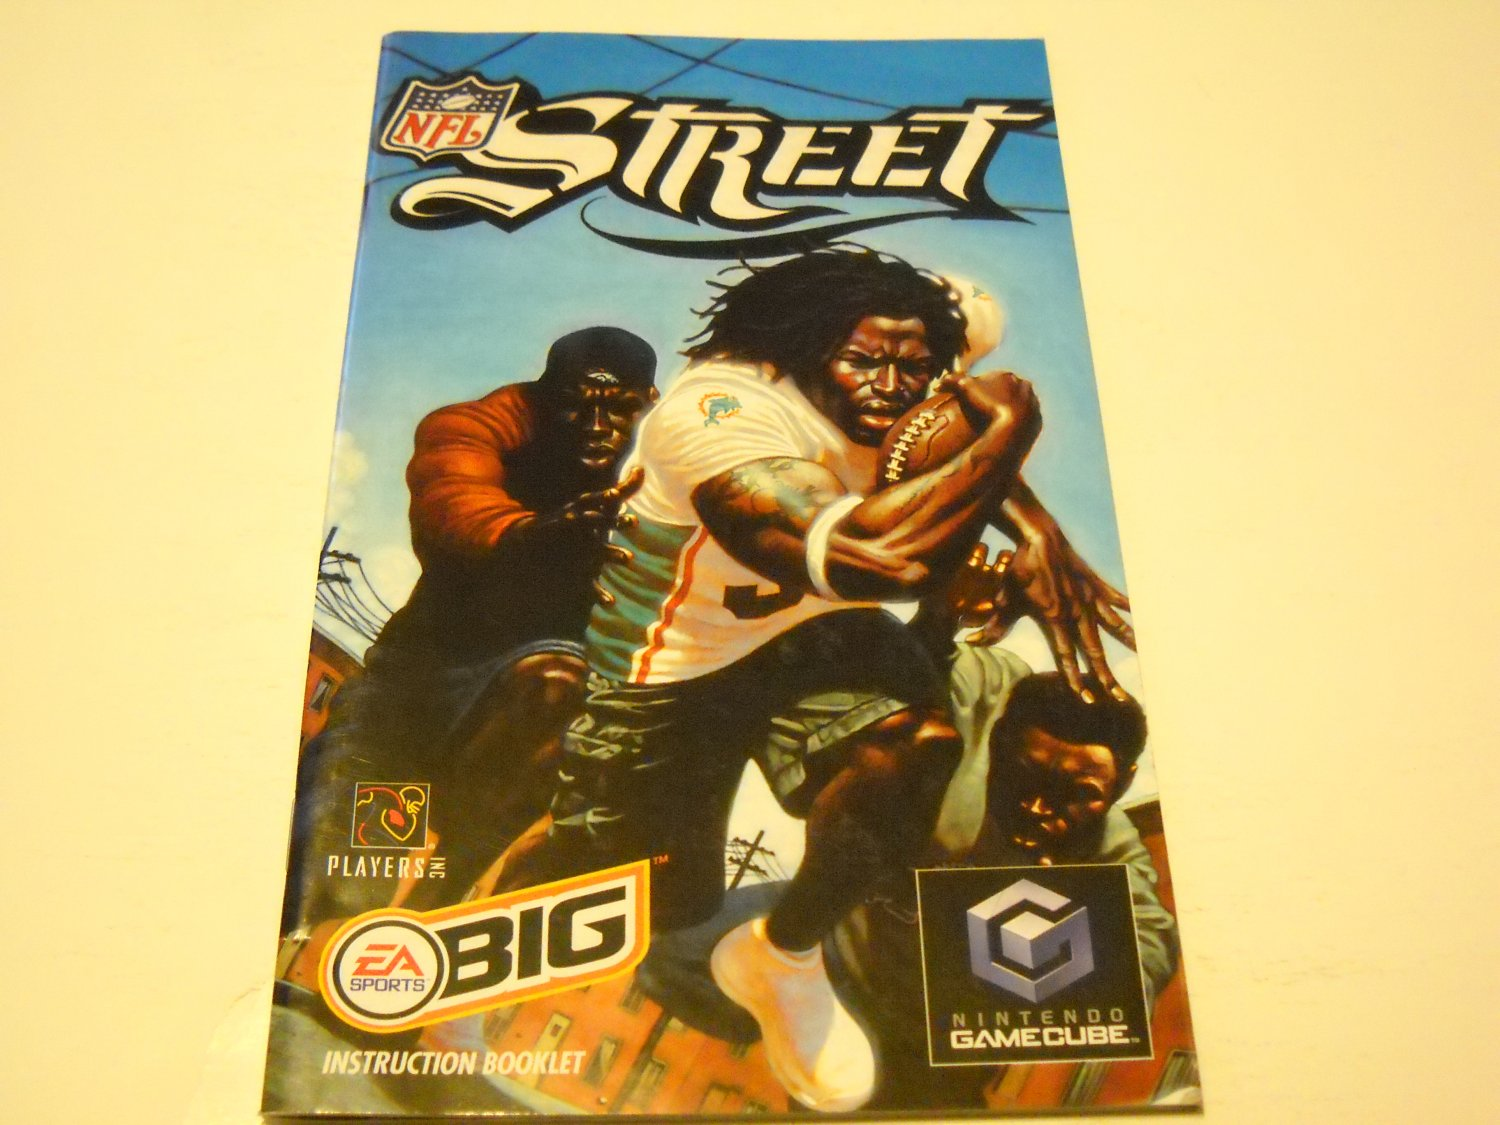 Manual ONLY ~  for NFL Street   Gamecube